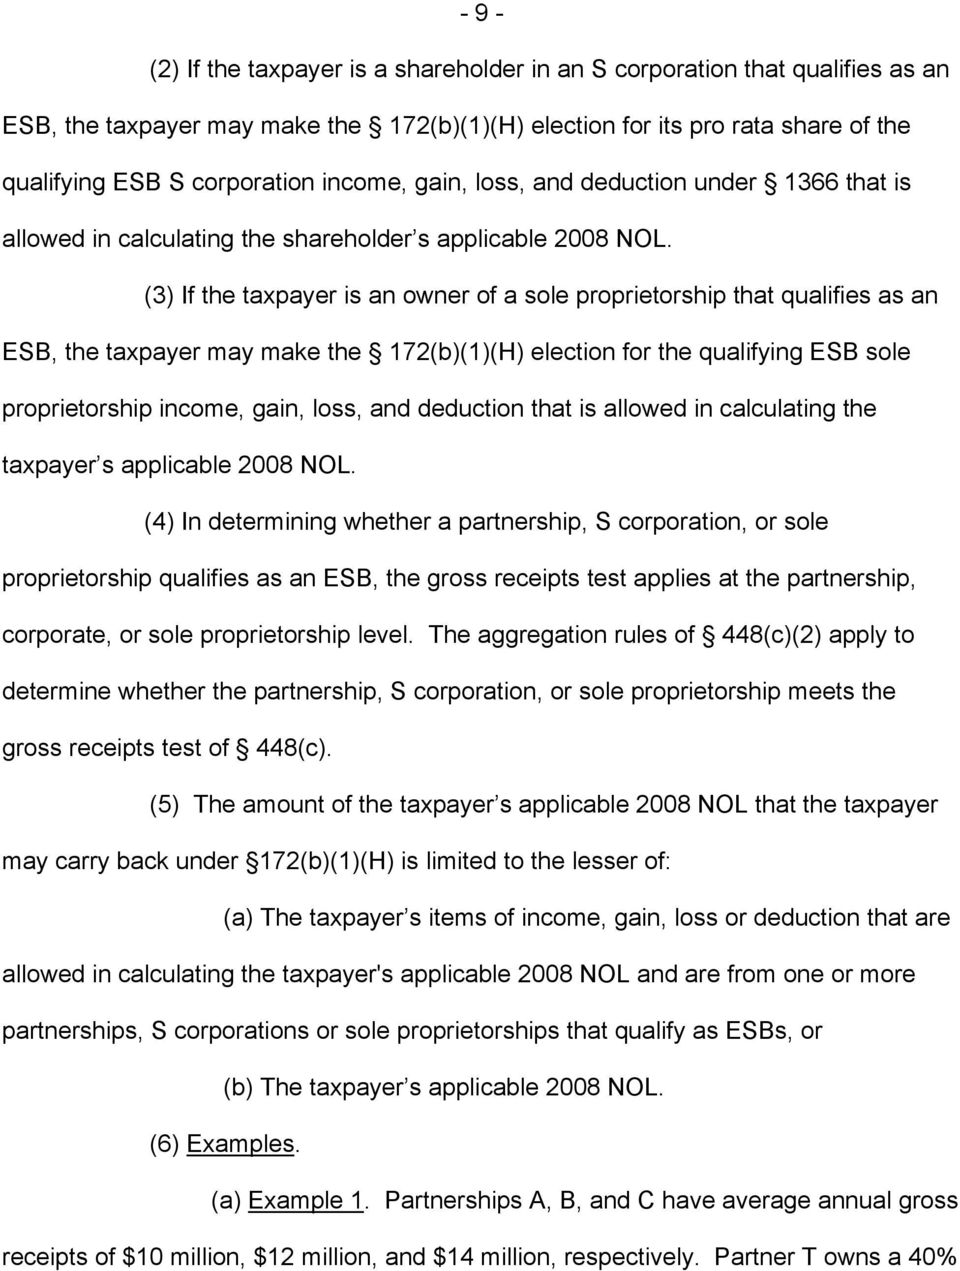 (3) If the taxpayer is an owner of a sole proprietorship that qualifies as an ESB, the taxpayer may make the 172(b)(1)(H) election for the qualifying ESB sole proprietorship income, gain, loss, and